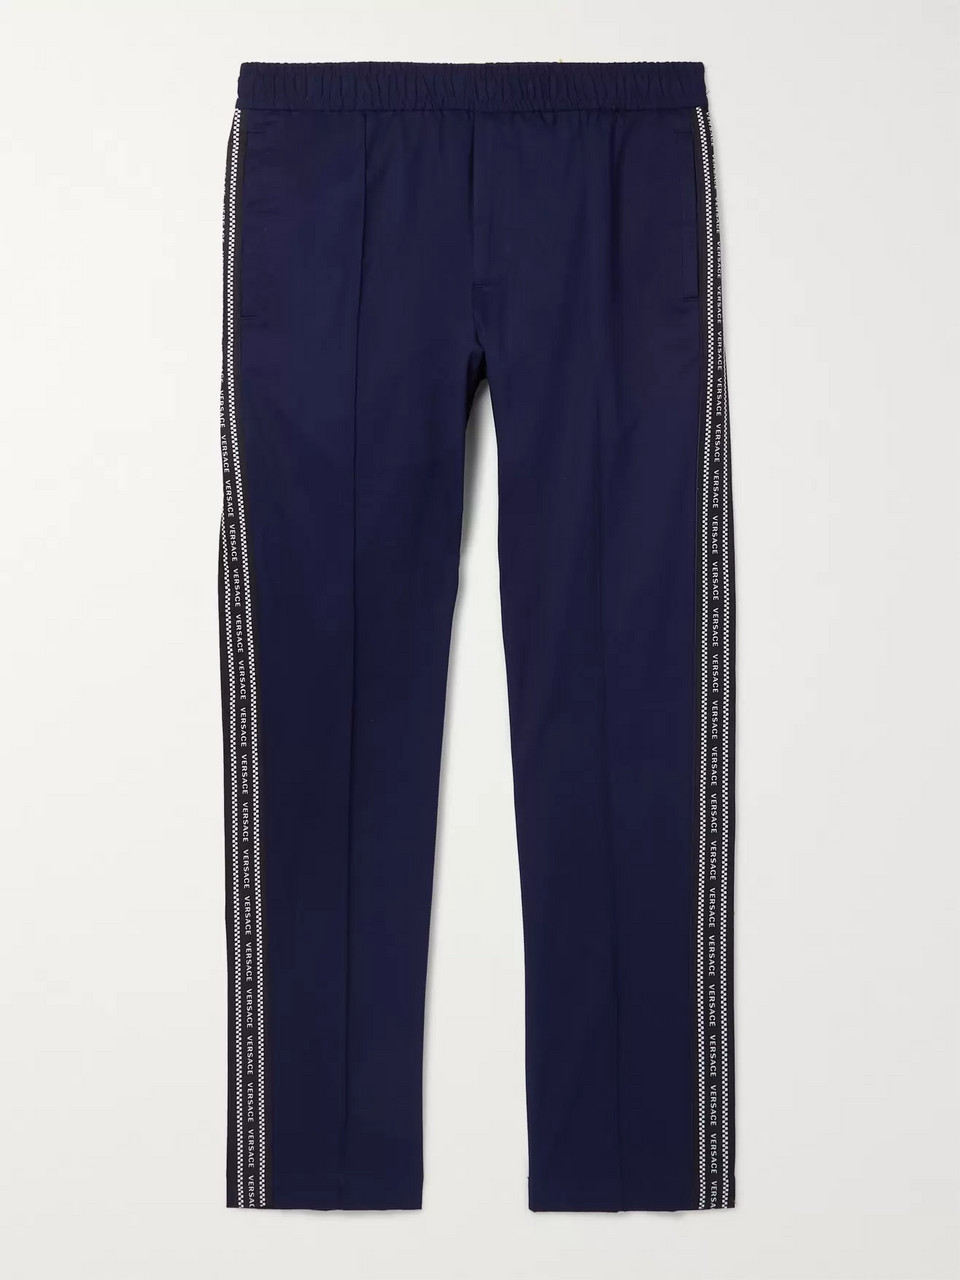 Versace Navy Slim-Fit Logo-Trimmed Cotton-Blend Gabardine Trousers